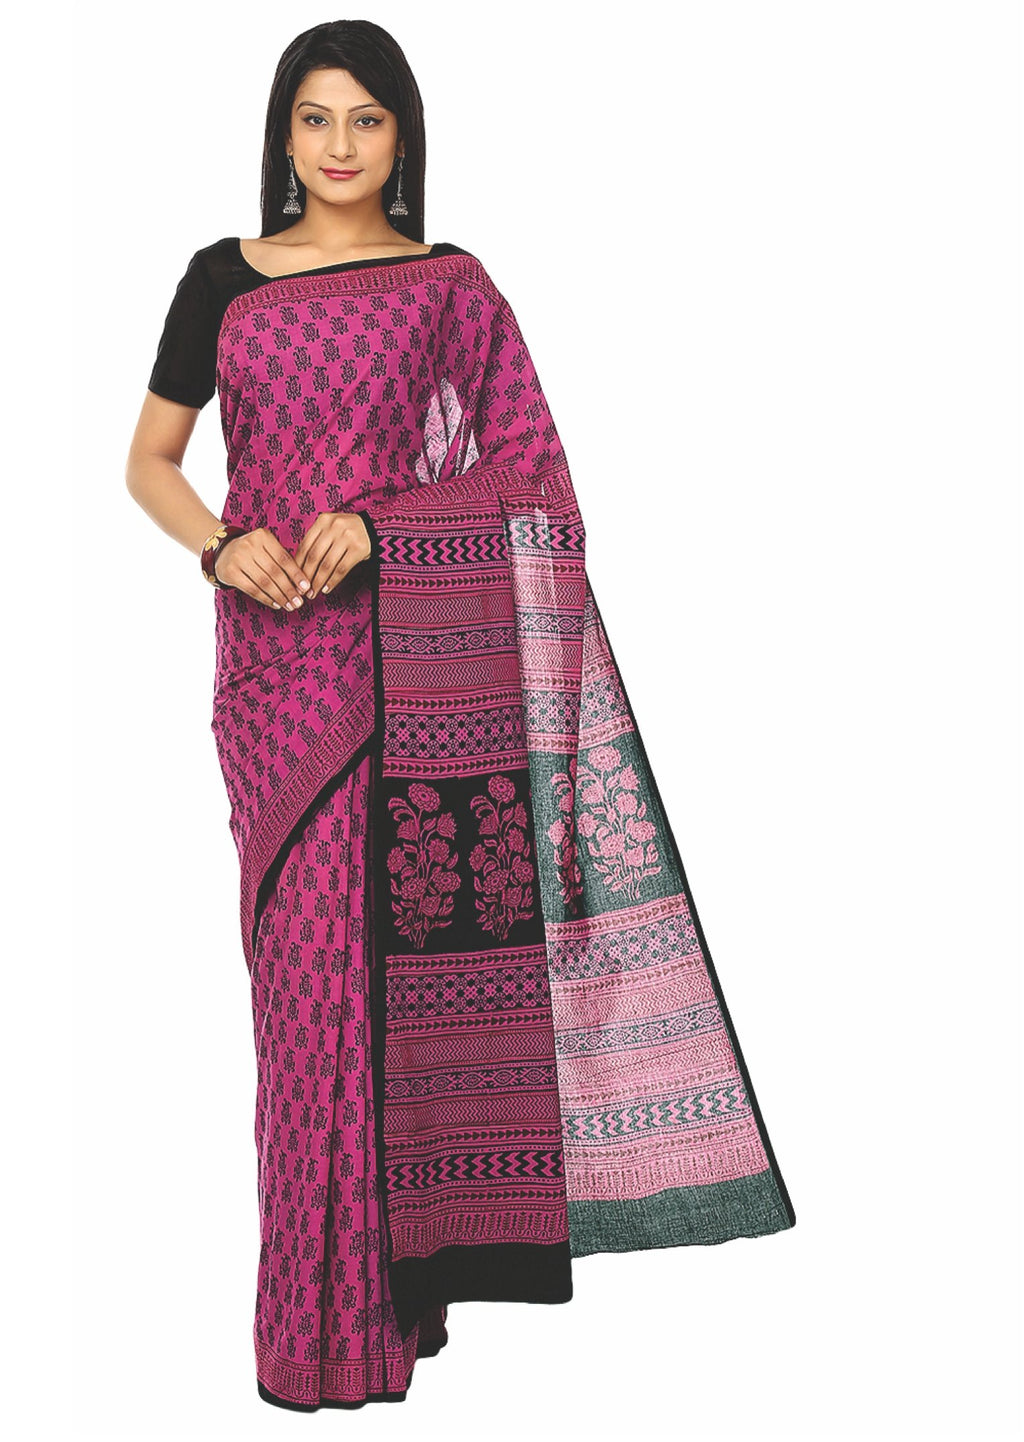 Kalakari India Pink Bagh Handblock Print Handcrafted Cotton Saree-Saree-Kalakari India-ZIBASA0007-Bagh, Cotton, Geographical Indication, Hand Blocks, Hand Crafted, Heritage Prints, Natural Dyes, Sarees, Sustainable Fabrics-[Linen,Ethnic,wear,Fashionista,Handloom,Handicraft,Indigo,blockprint,block,print,Cotton,Chanderi,Blue, latest,classy,party,bollywood,trendy,summer,style,traditional,formal,elegant,unique,style,hand,block,print, dabu,booti,gift,present,glamorous,affordable,collectible,Sari,Sare